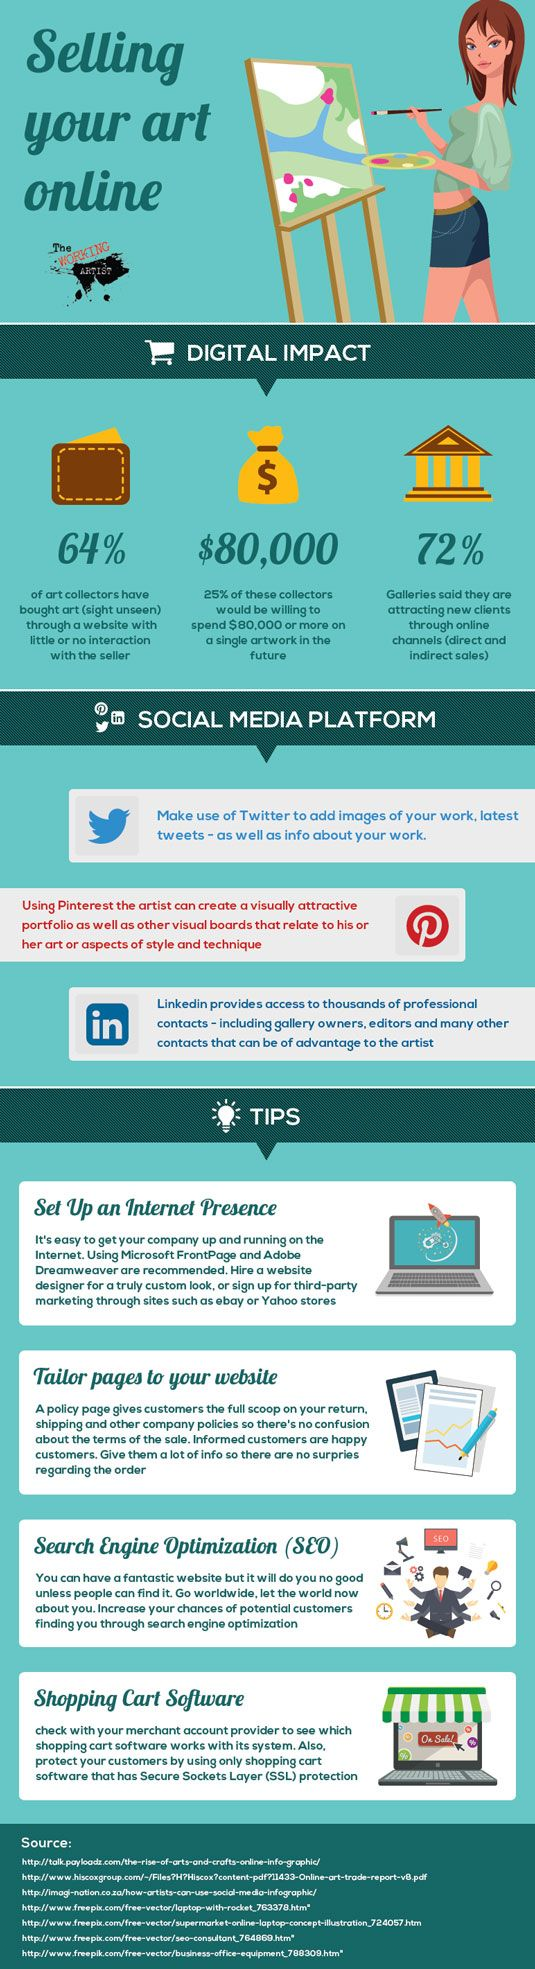 4 top tips for selling your art online | Infographic | Creative Bloq